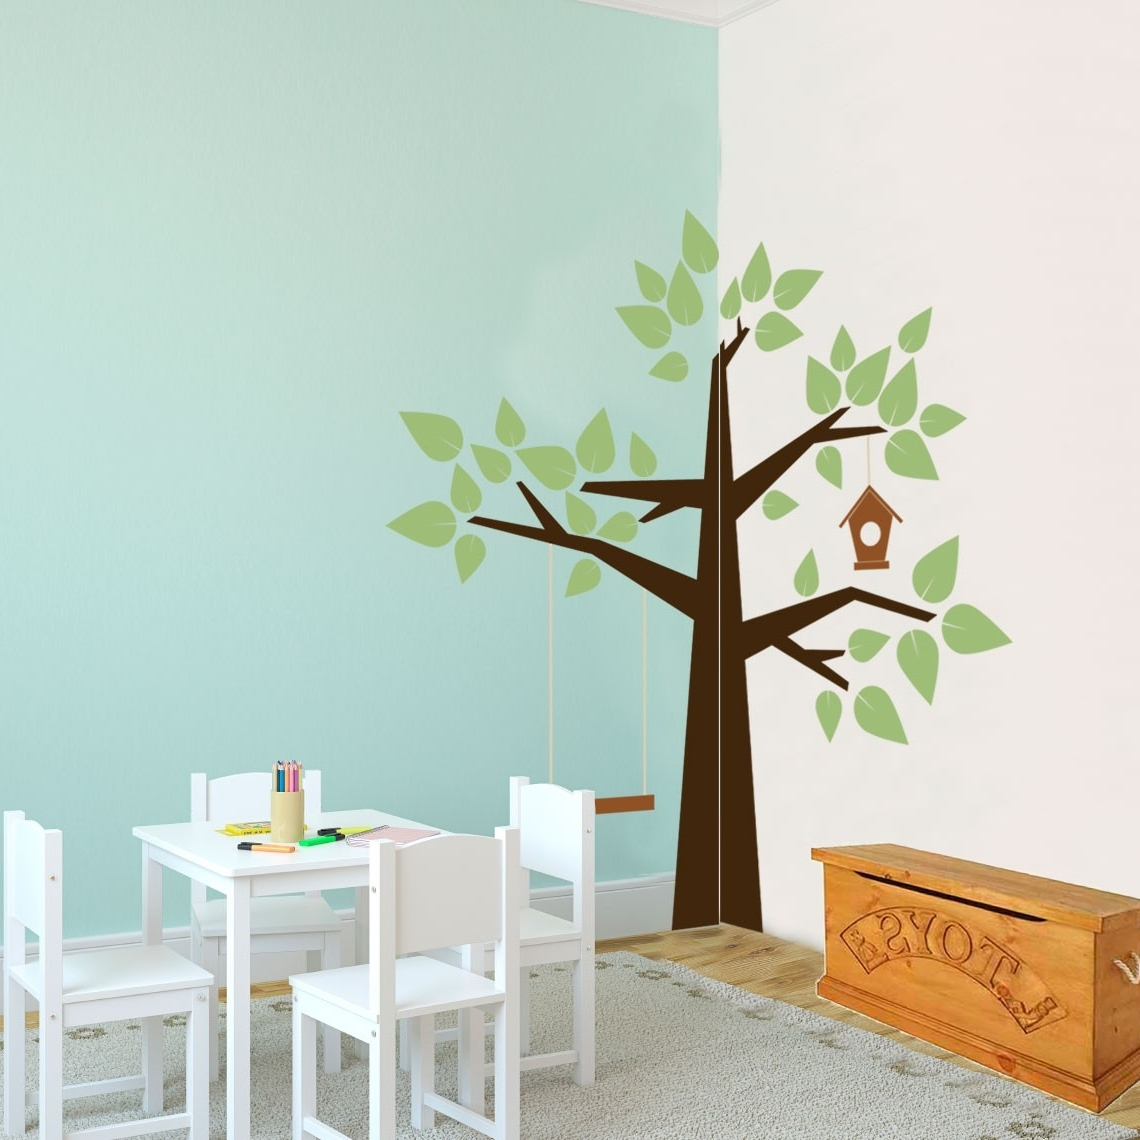 Preschool Classroom Wall Decals Intended For Popular Whimsical Corner Tree – Nature – Vinyl Wall Art Decal For Kids (View 13 of 15)